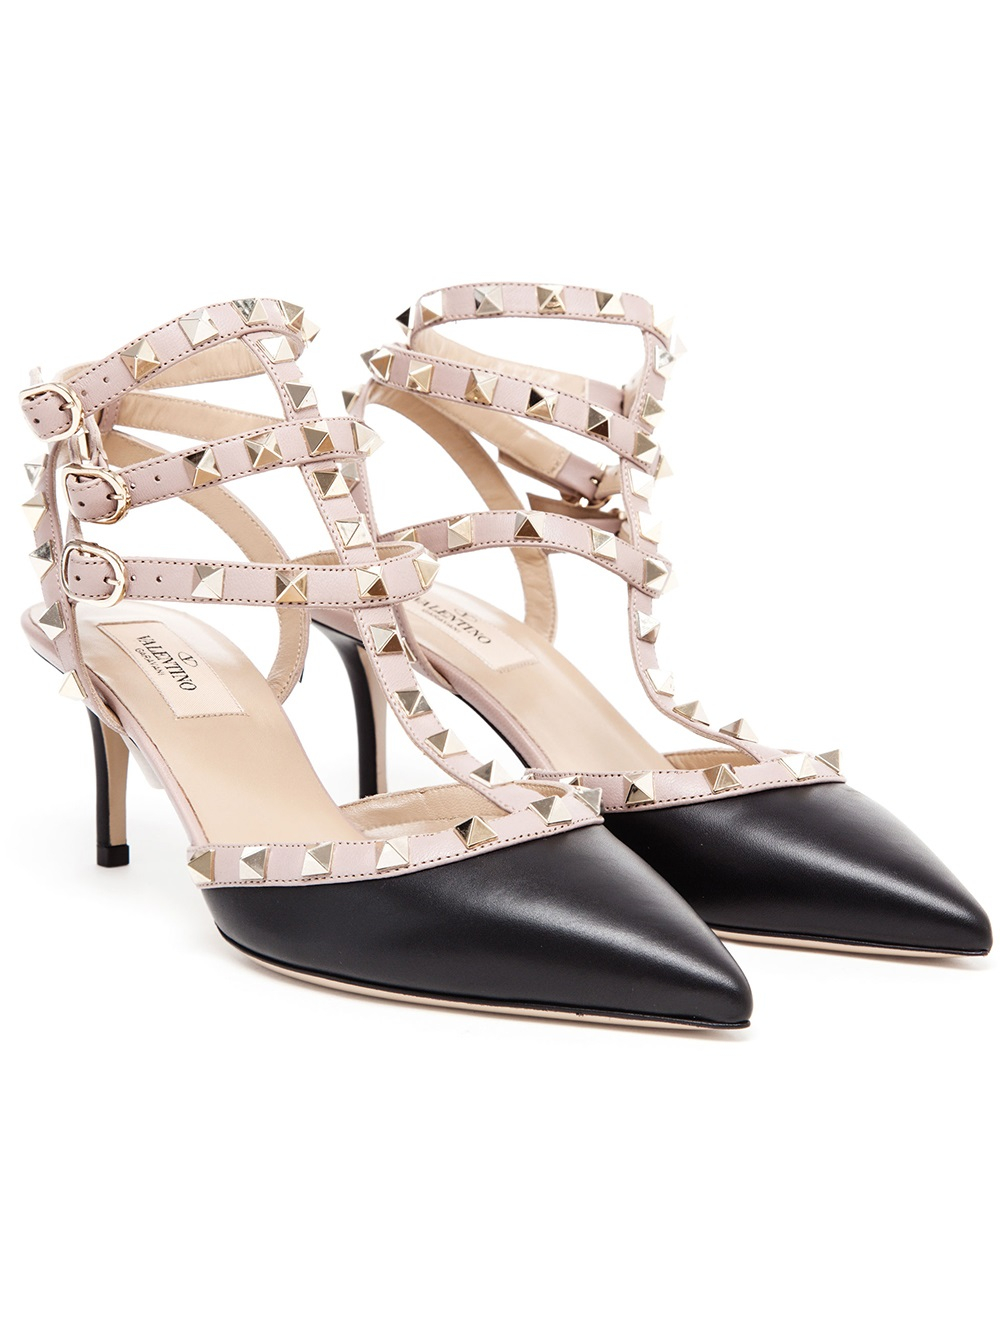 e7ca010414 Valentino Rockstud Leather Kitten Heels in Black - Lyst